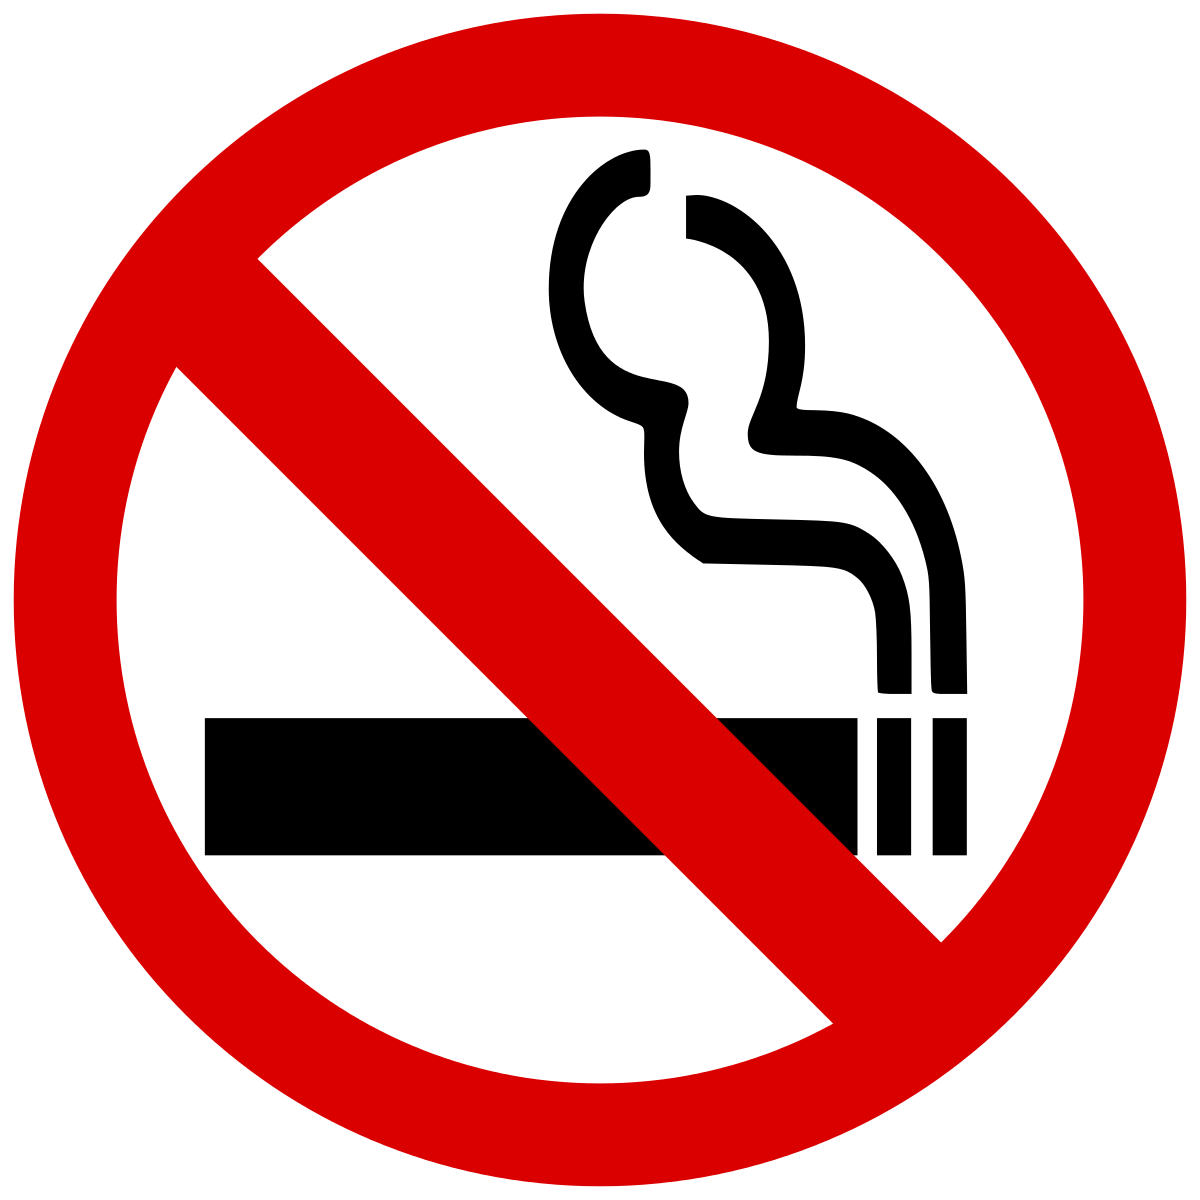 No Smoking PNG Warning Images, No Cigarette Smoking Clipart.